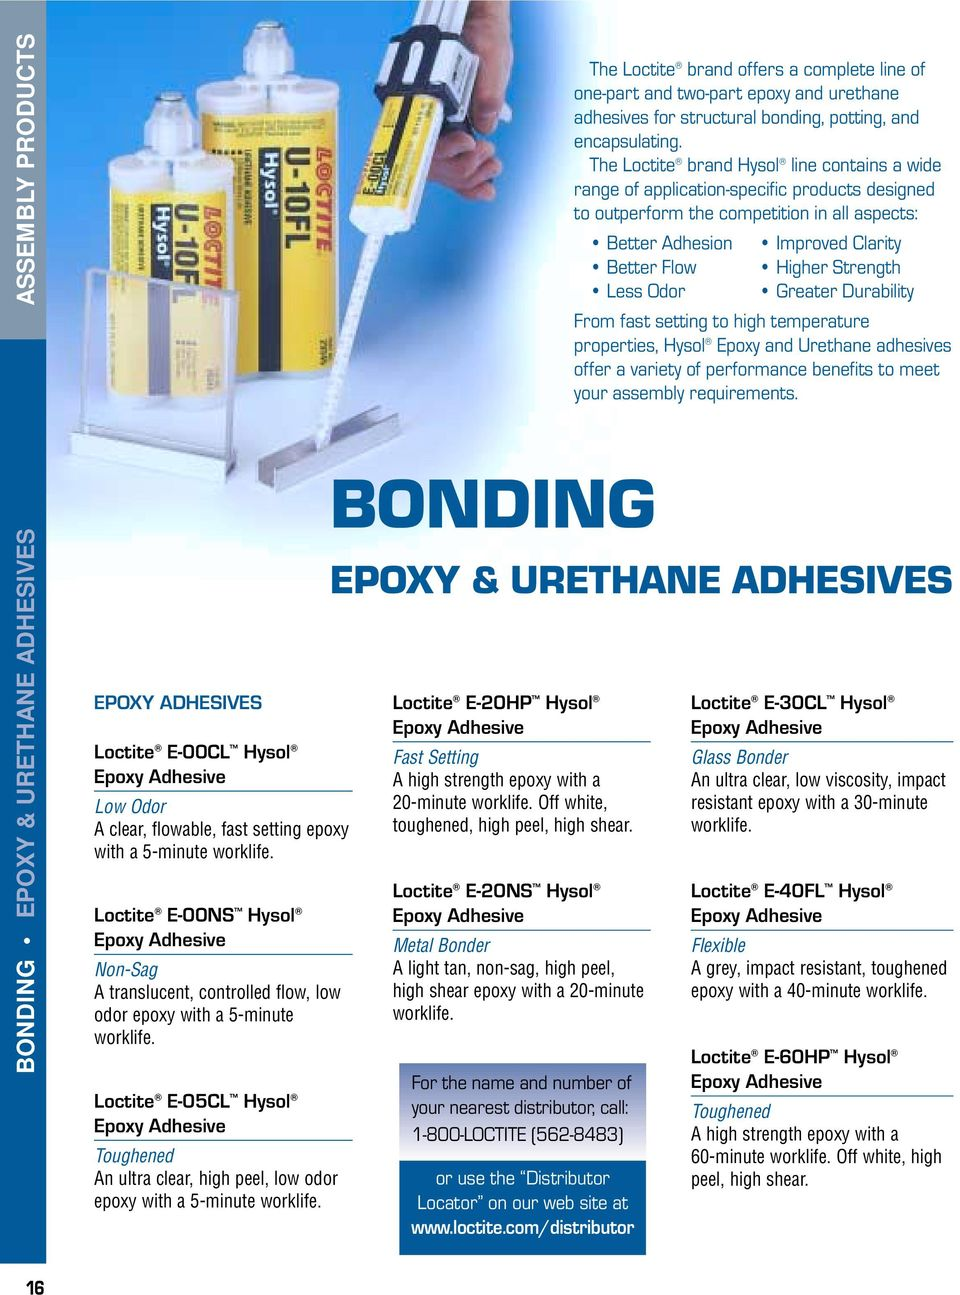 urethane adhesives for structural bonding, potting, and encapsulating.